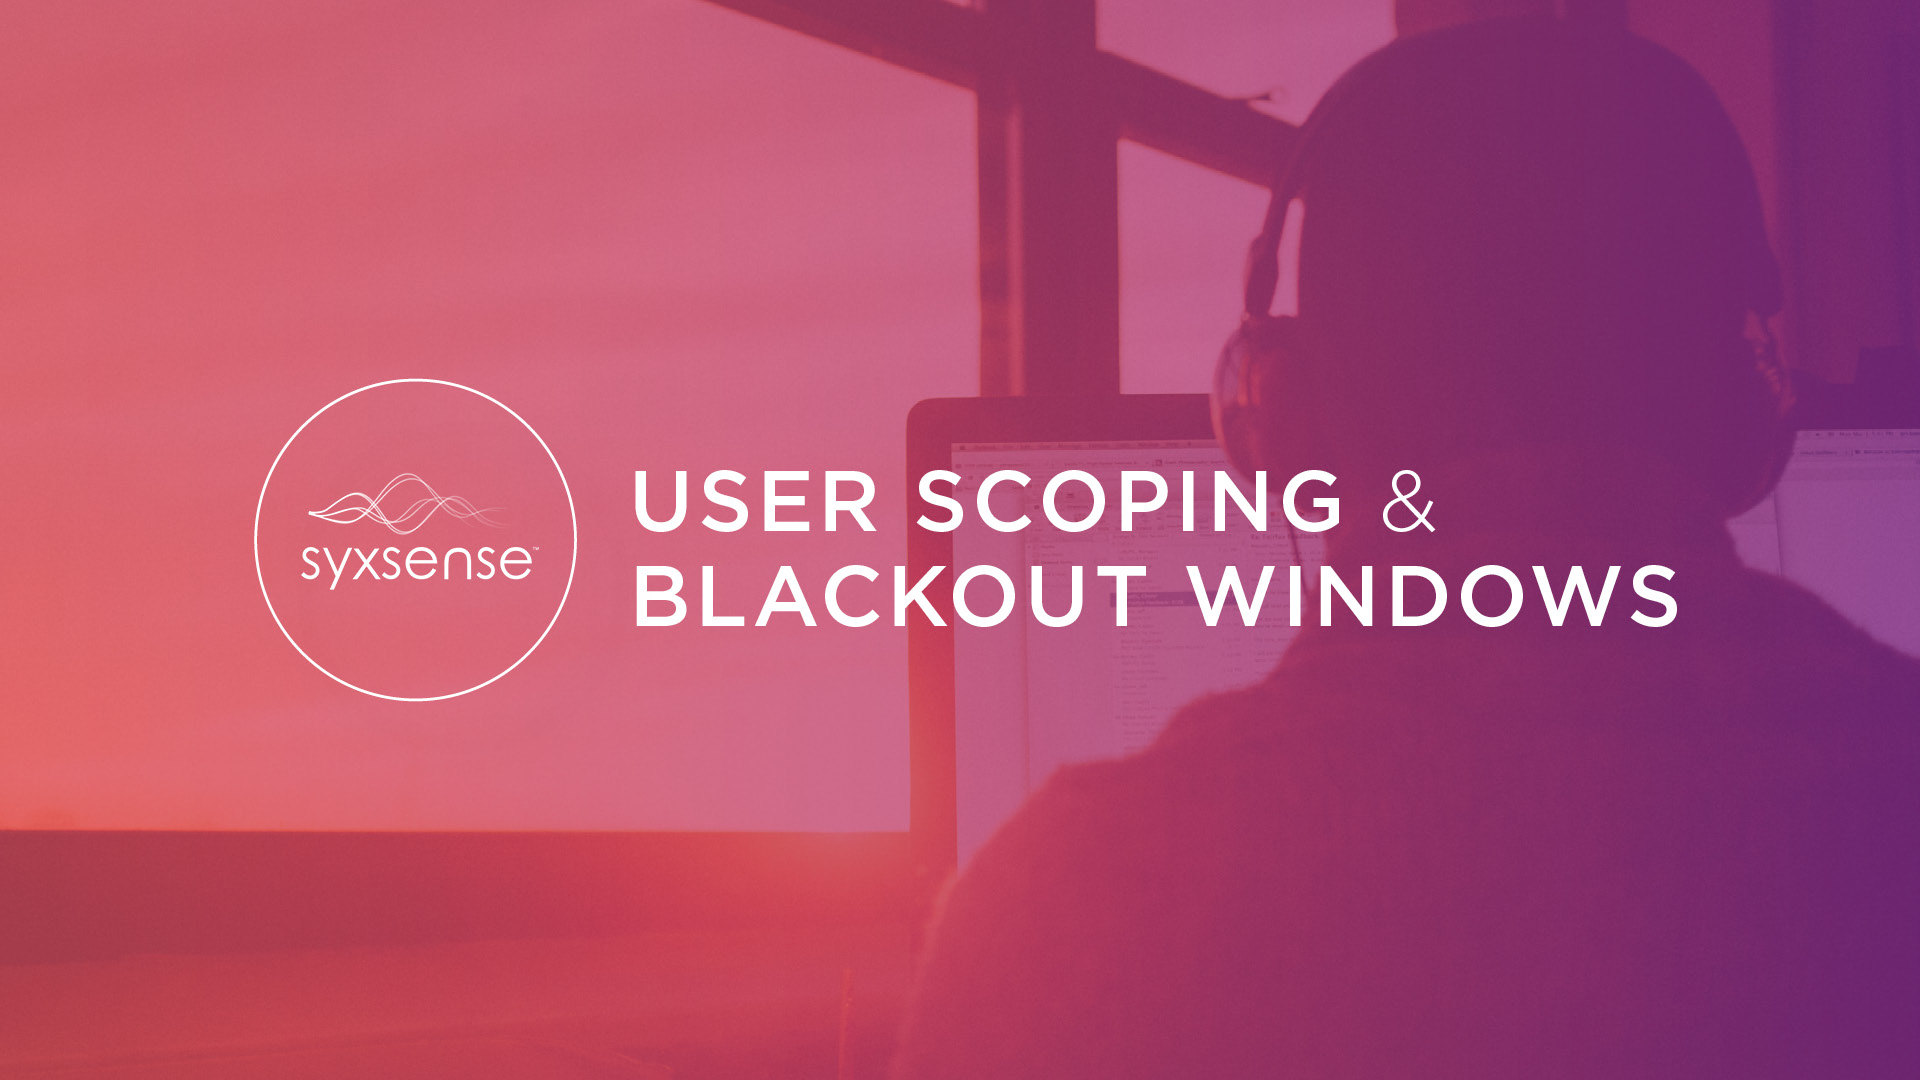 Syxsense releases User Scoping and Blackout Windows